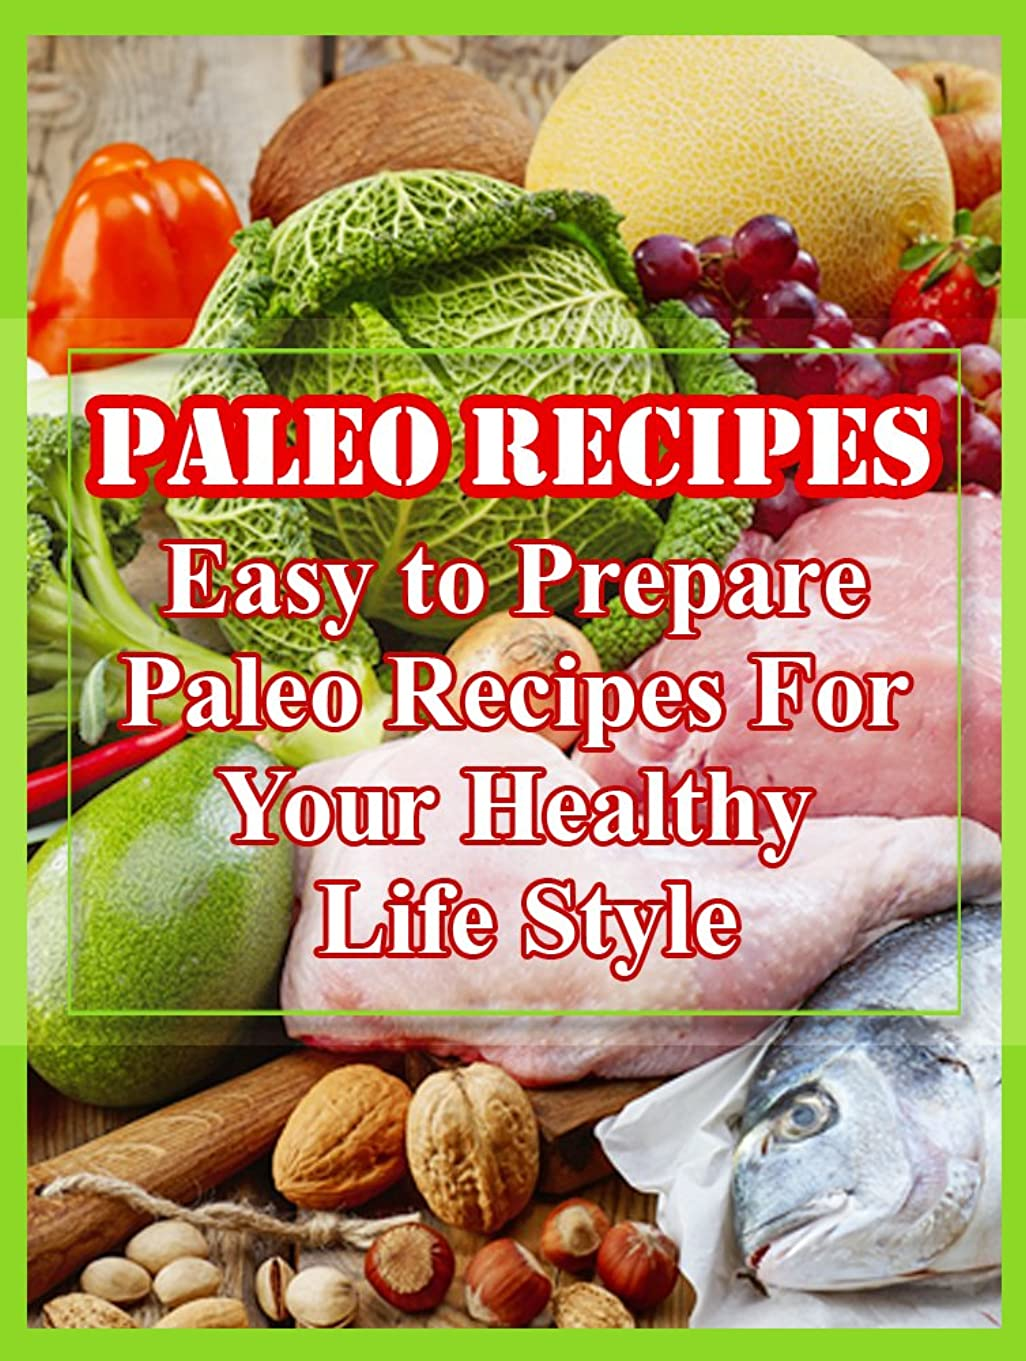 Paleo Recipes - Easy To Prepare Paleo Recipes For Healthy LifeStyle: The Paleo Diet- A High Protein Diet For Ultimate Strength And Muscle Mass (English Edition)